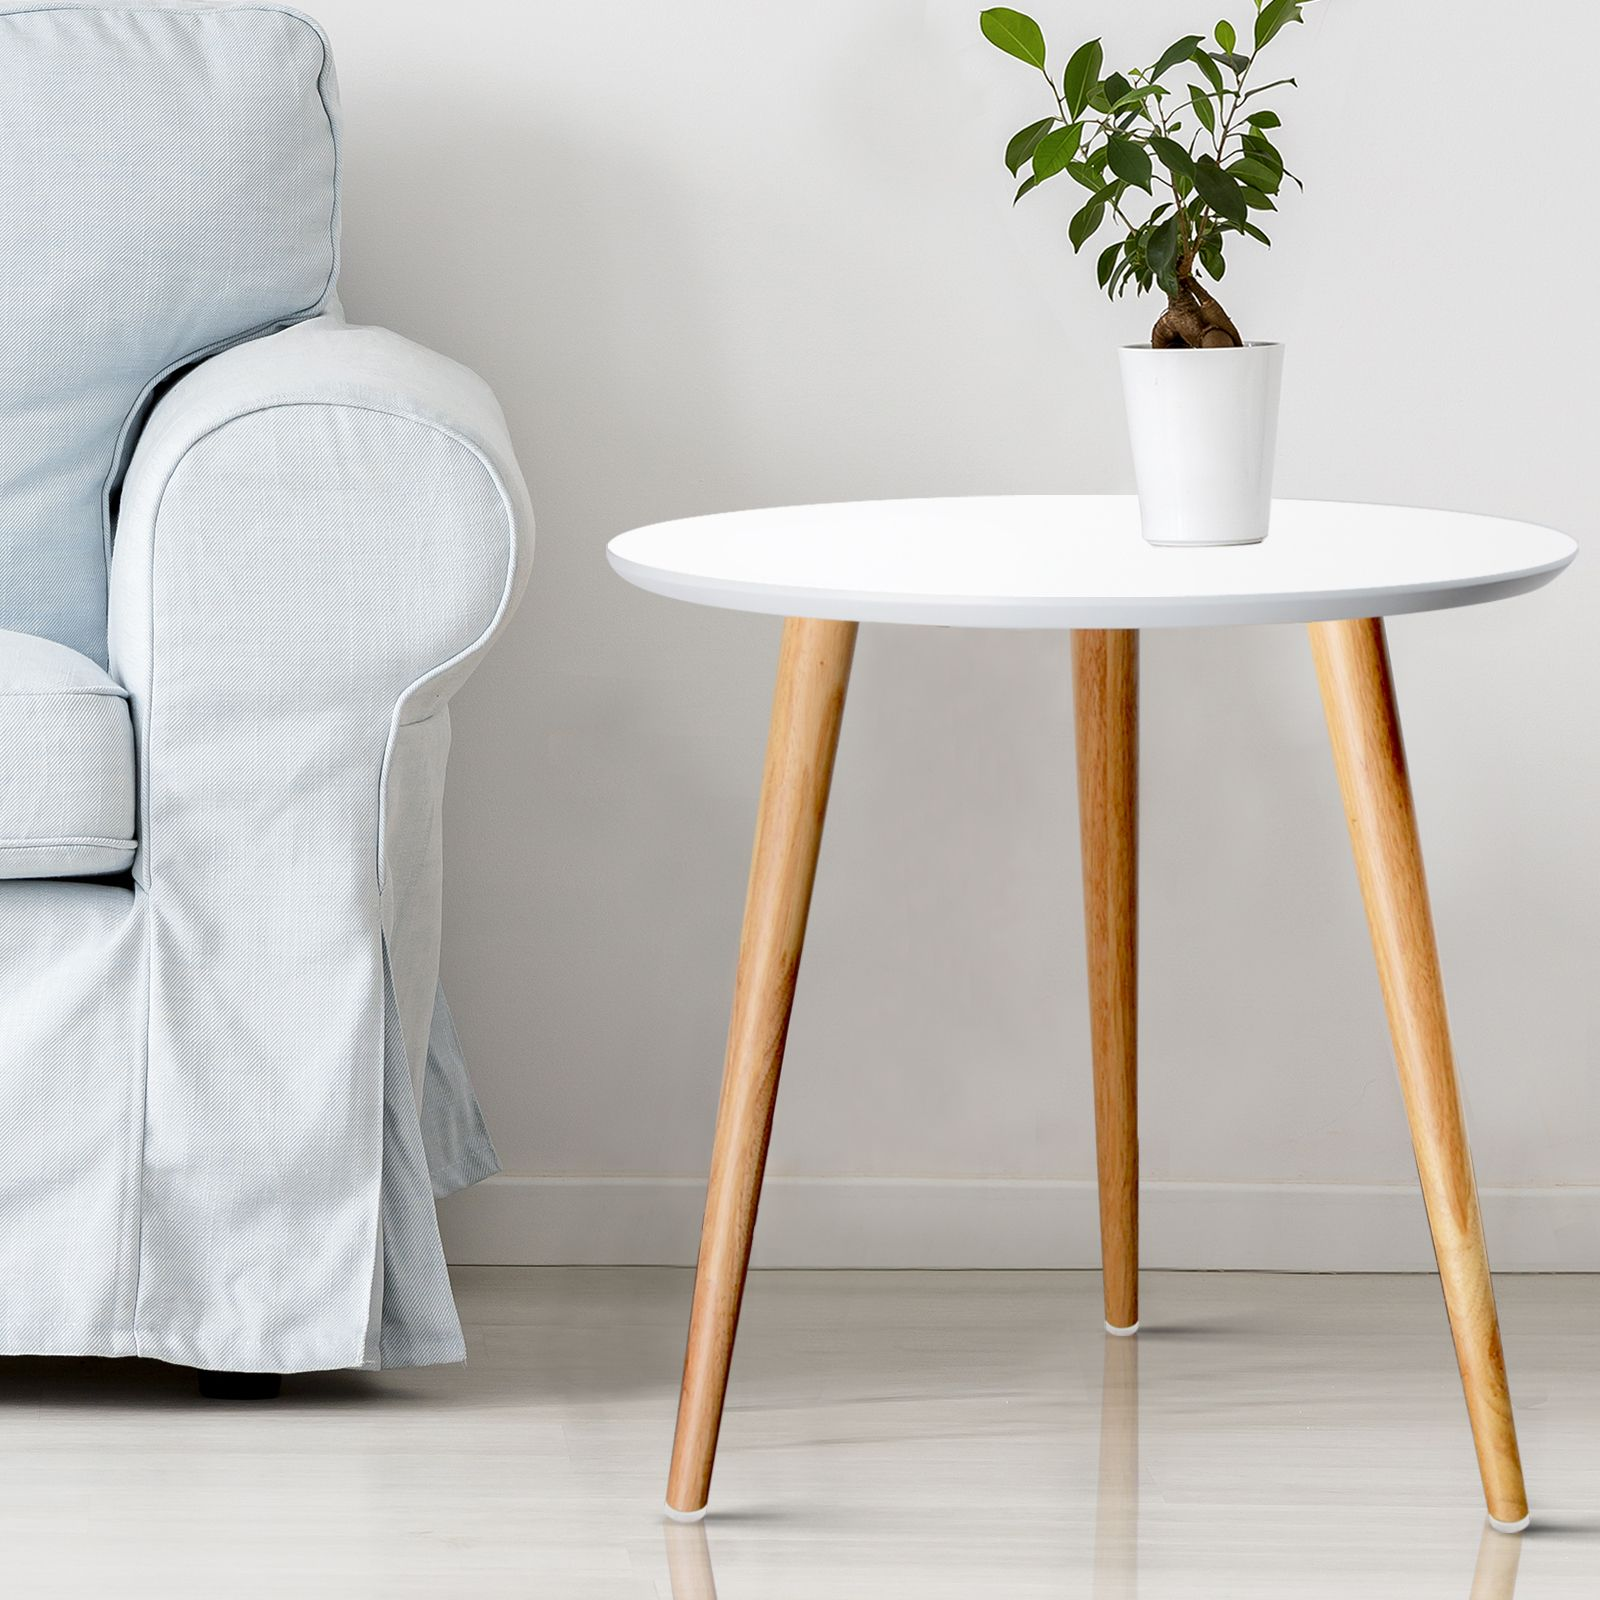 Artiss Coffee Table Round Side End Tables Bedside Furniture Wooden Modern In 2020 Coffee Table Scandinavian Coffee Table Coffee Table White [ 1600 x 1600 Pixel ]